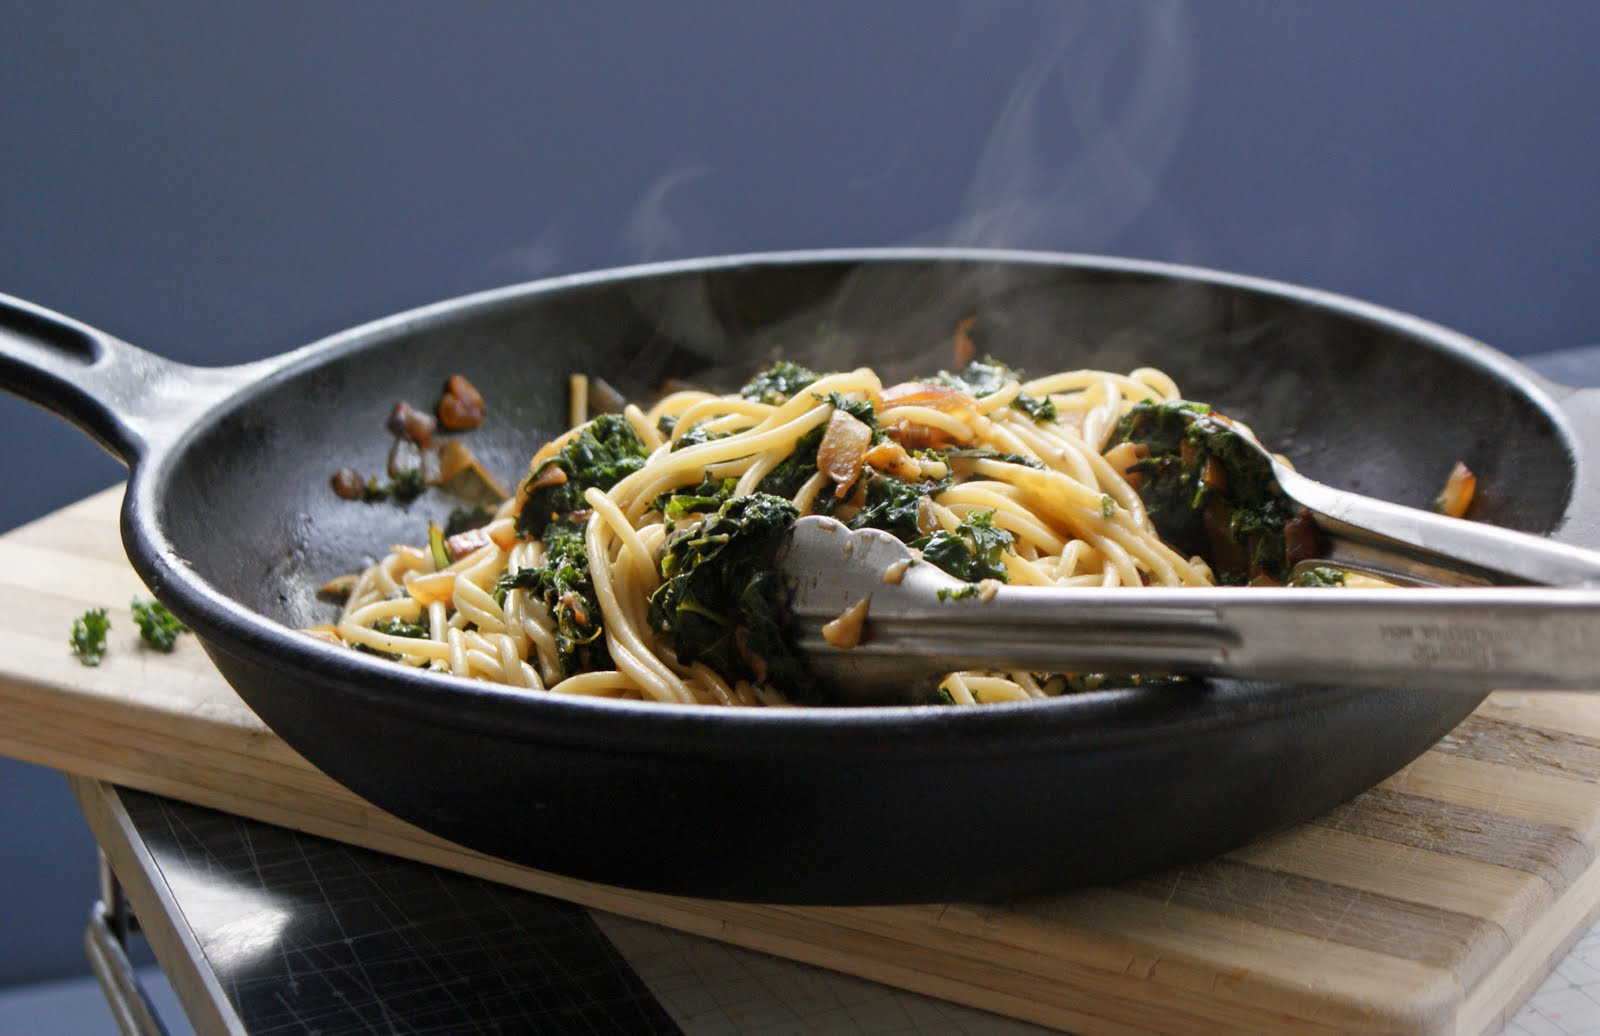 Spaghetti with Braised Kale - Dinner With Julie